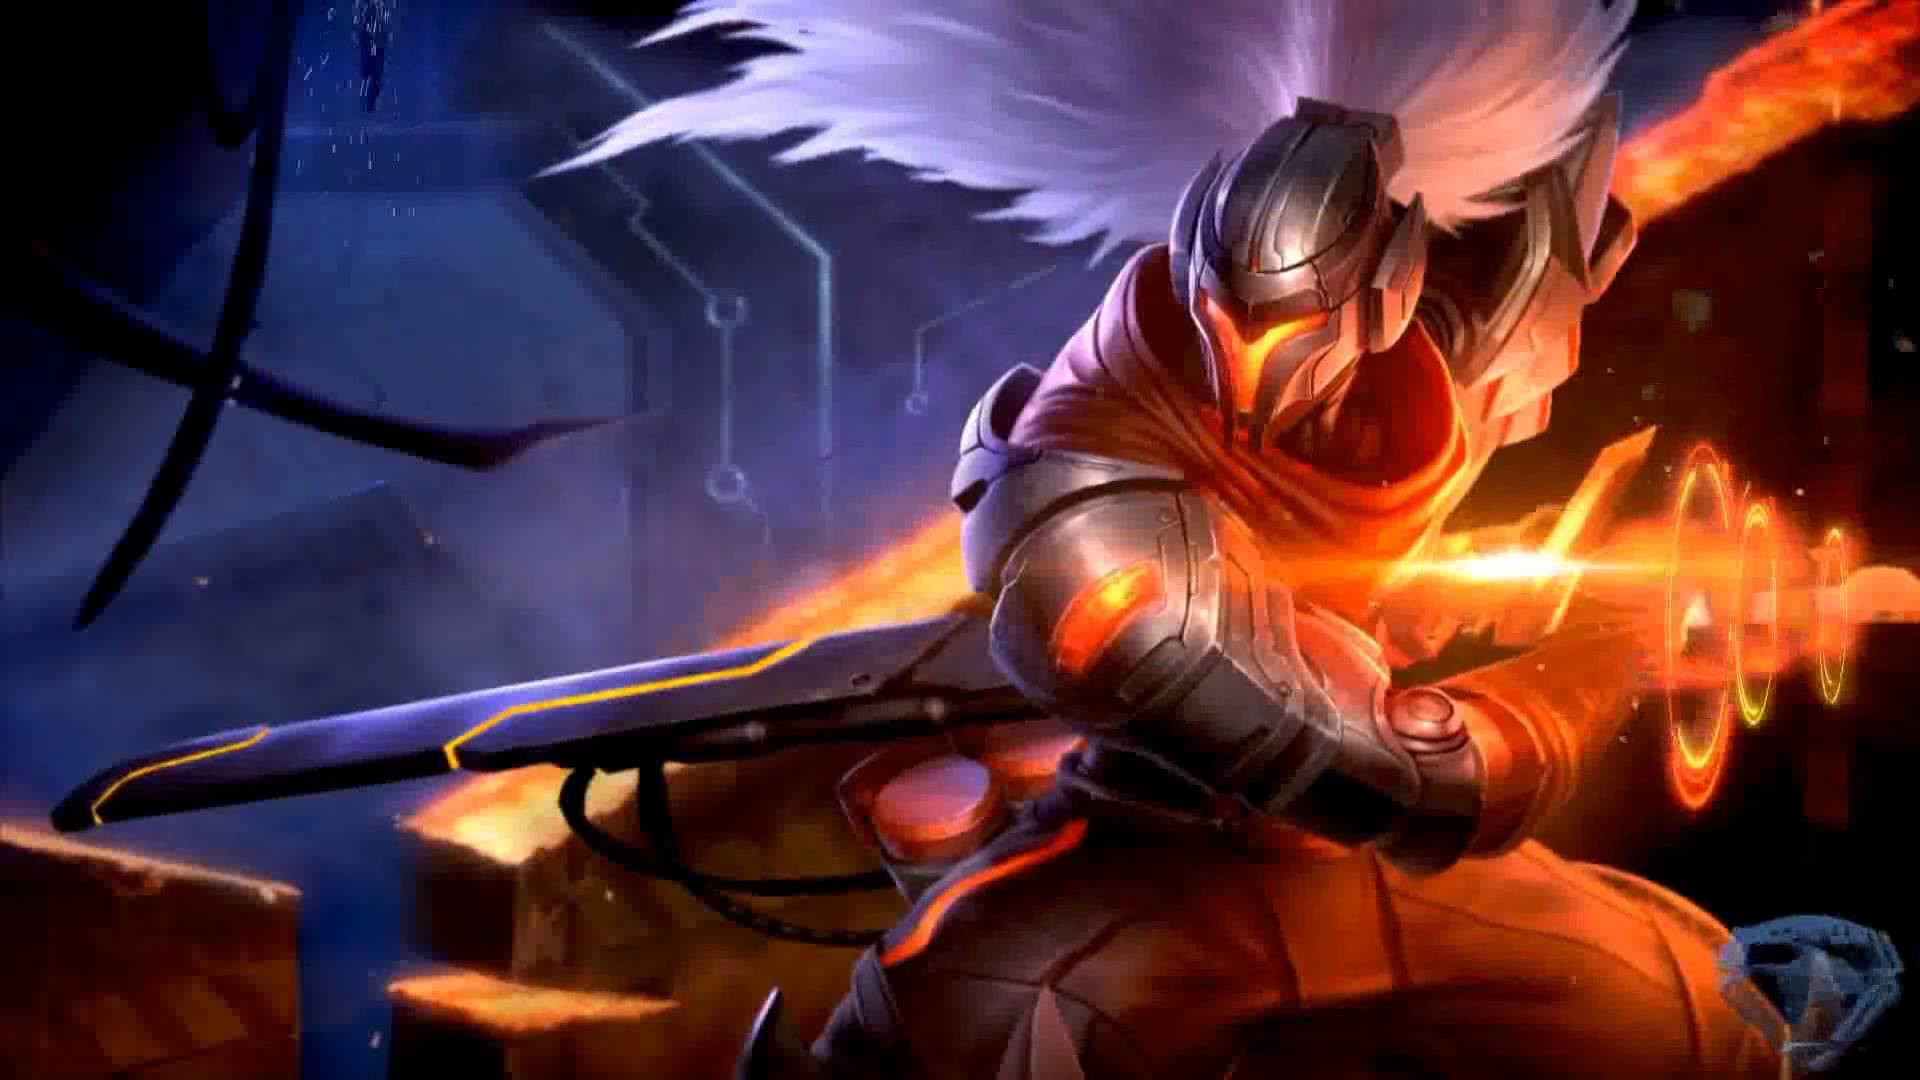 1920x1080 Project Yasuo (animated by DeepSpeeD187) Live Wallpaper (Dreamscene/Android  LWP) - YouTube